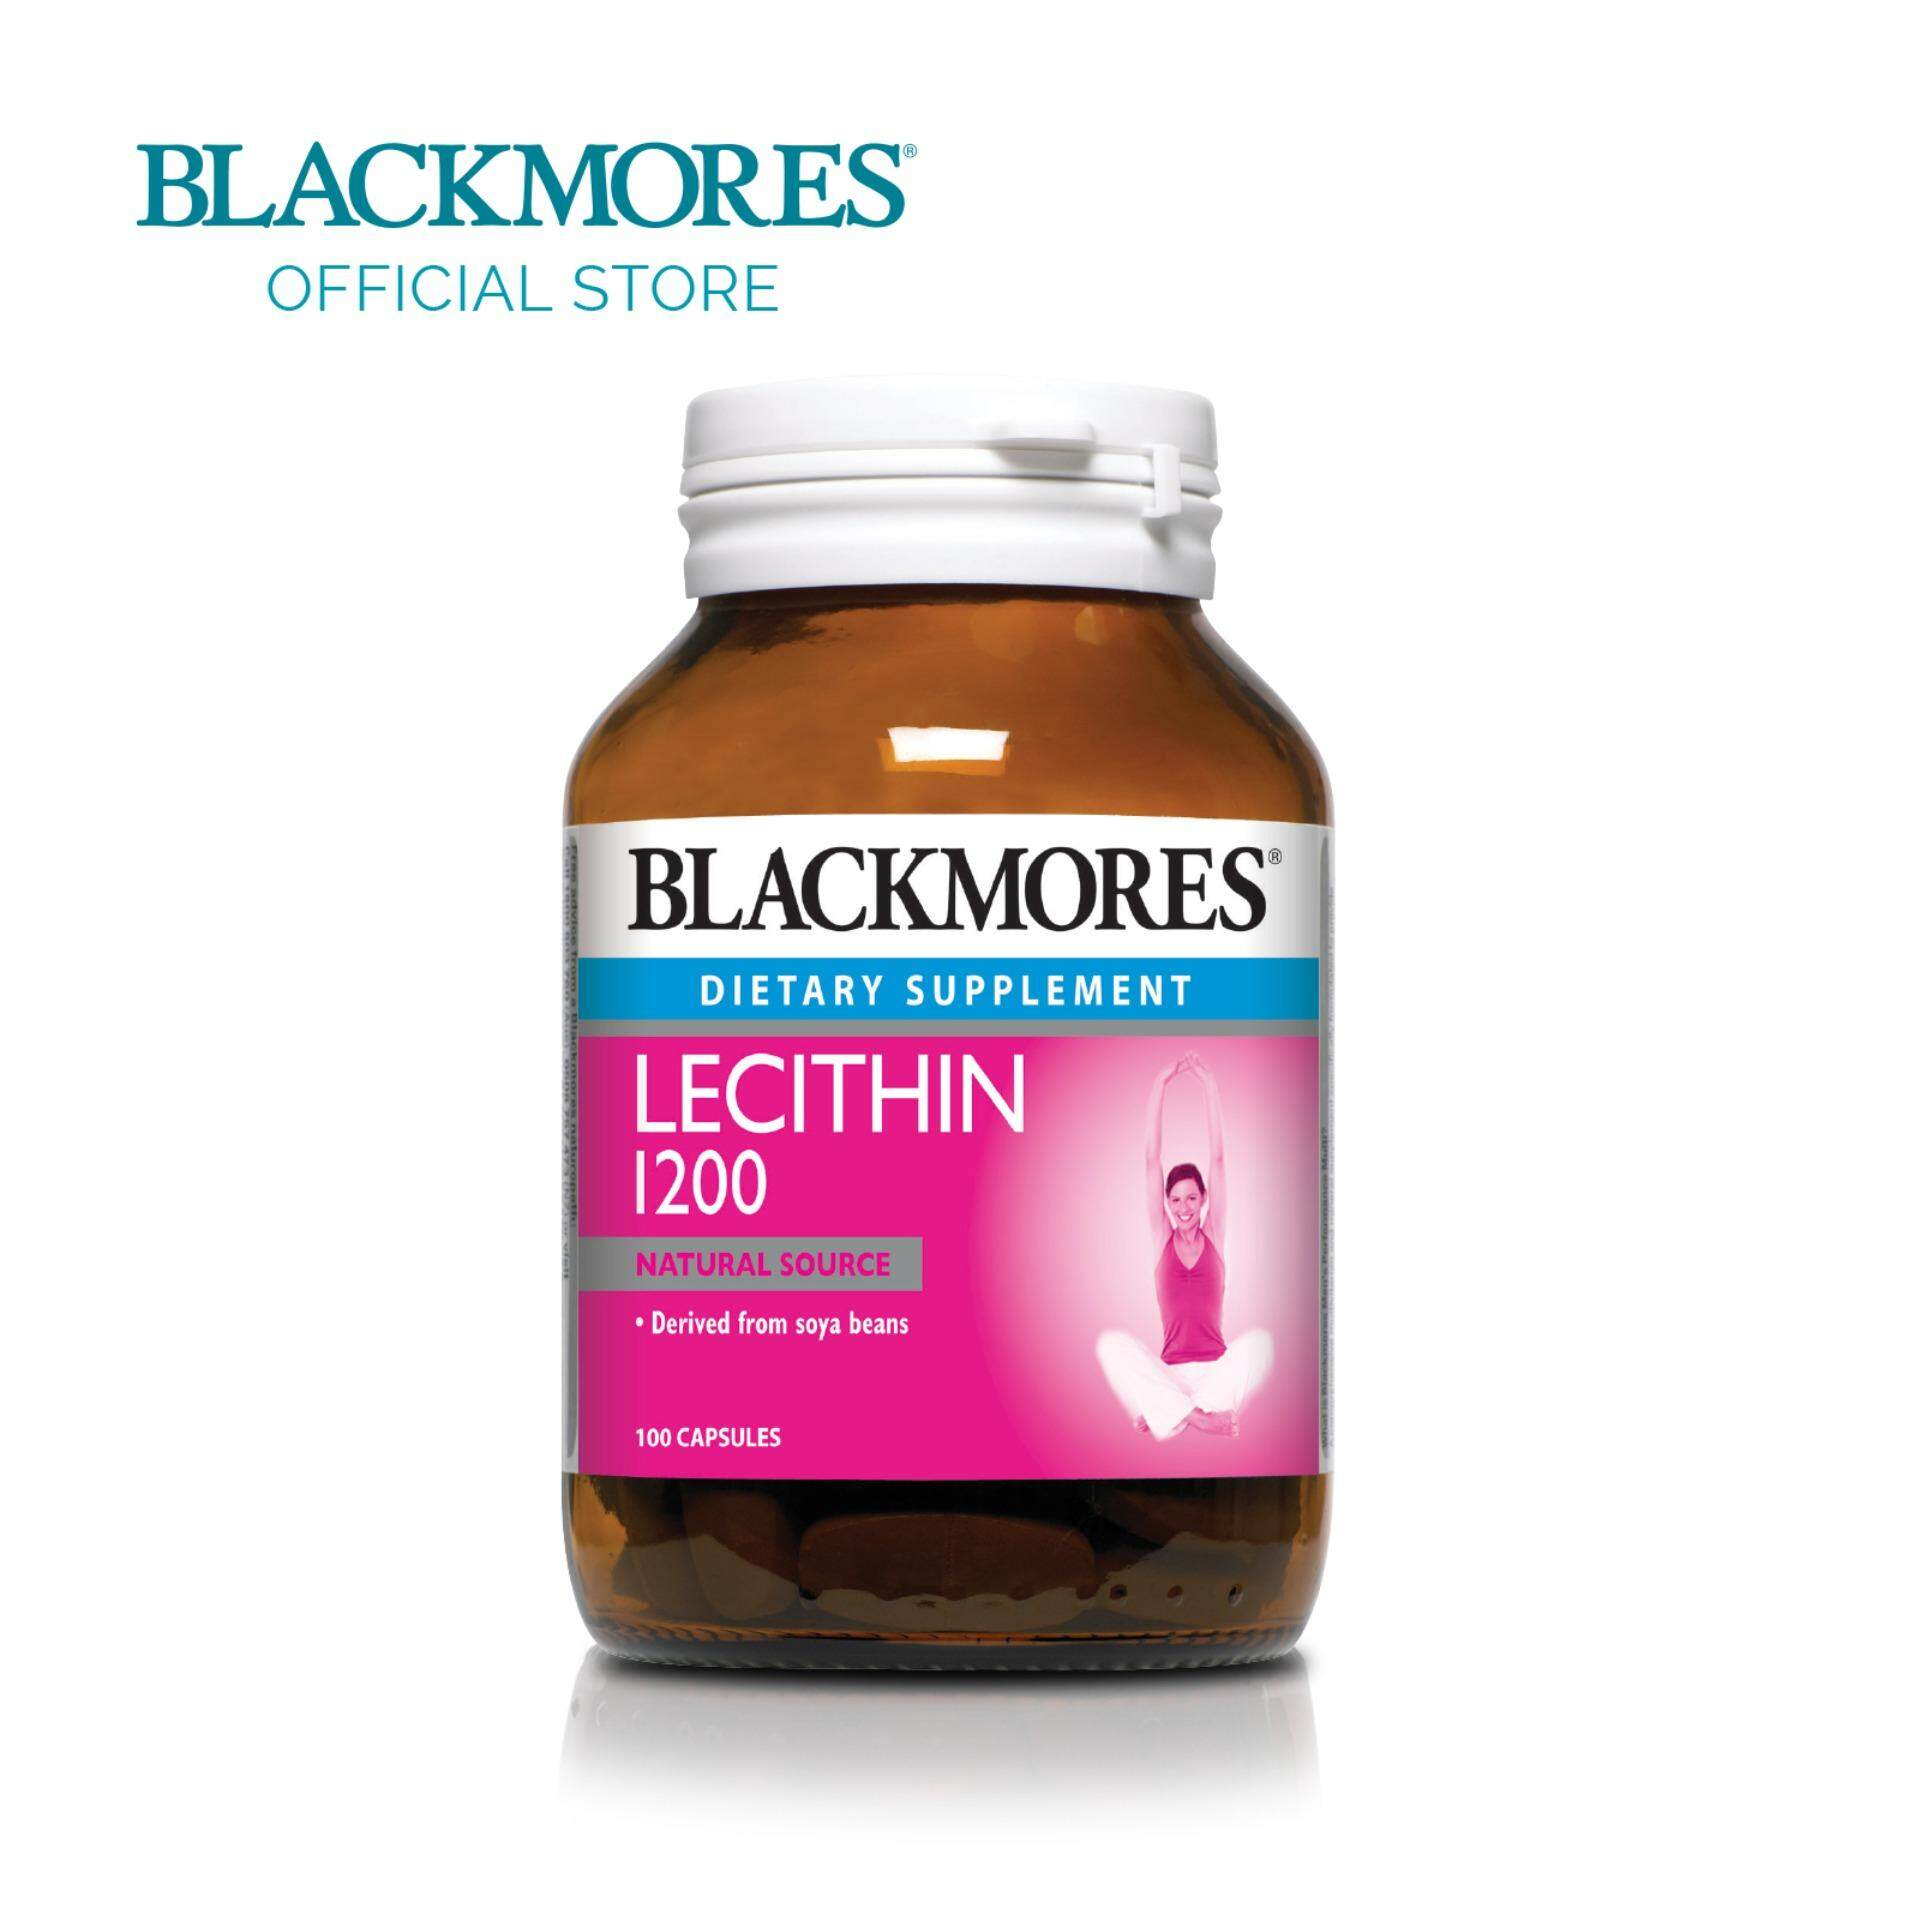 Blackmores For The Best Price In Malaysia Superkids Omega Brain Chewables Minyak Ikan Fish Oil Lecithin 1200 100s